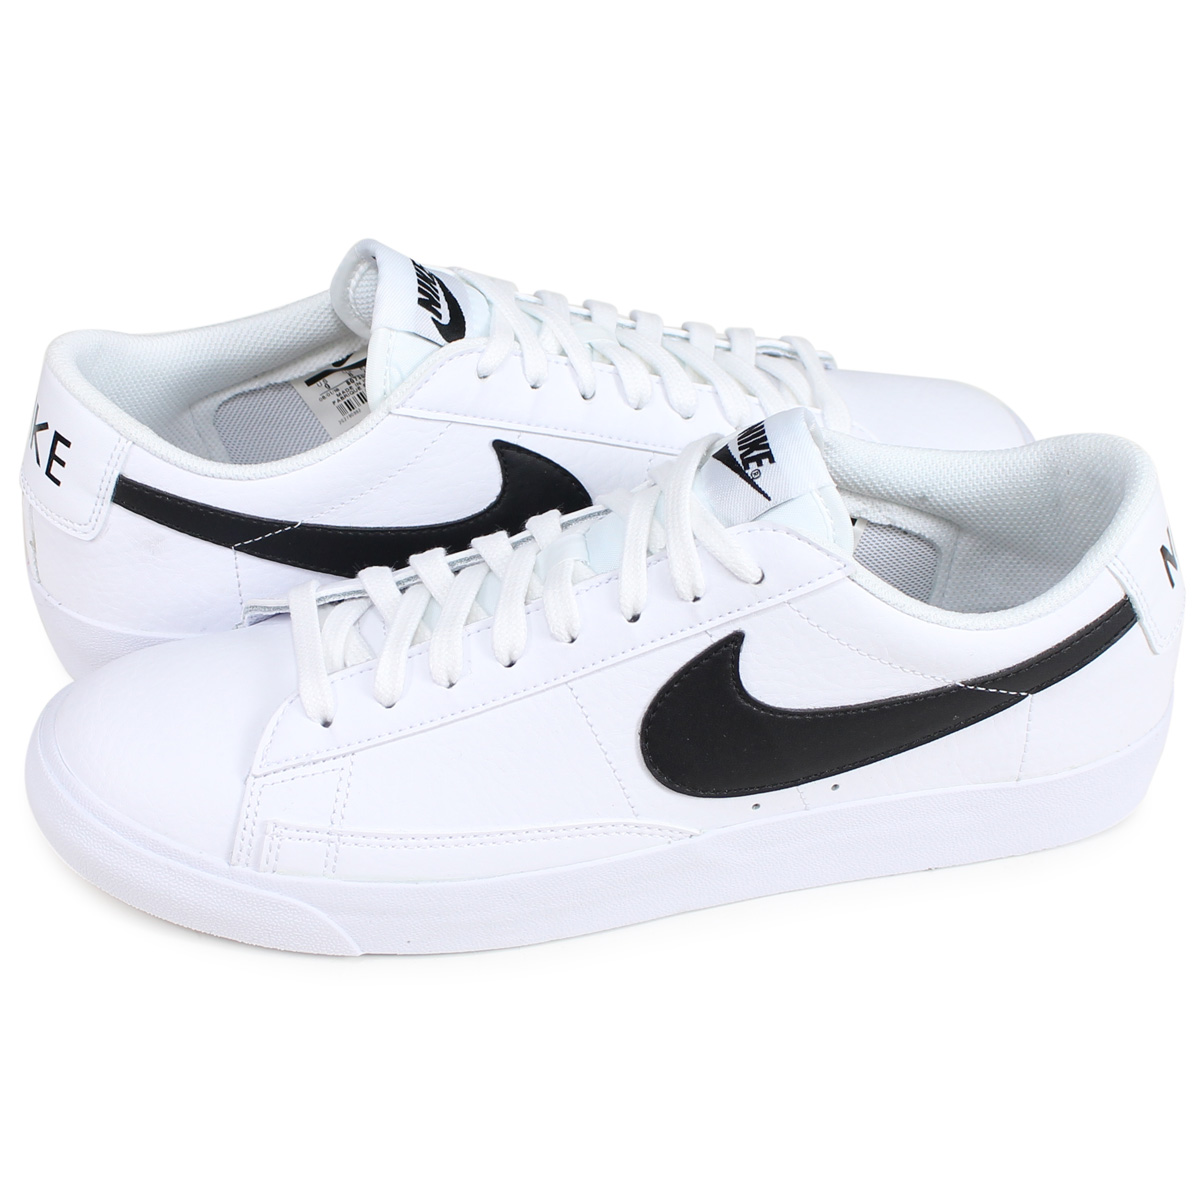 competitive price 2bdef 81963 Nike NIKE blazer low sneakers men BLAZER LOW LEATHER white BQ7306-001 [192]